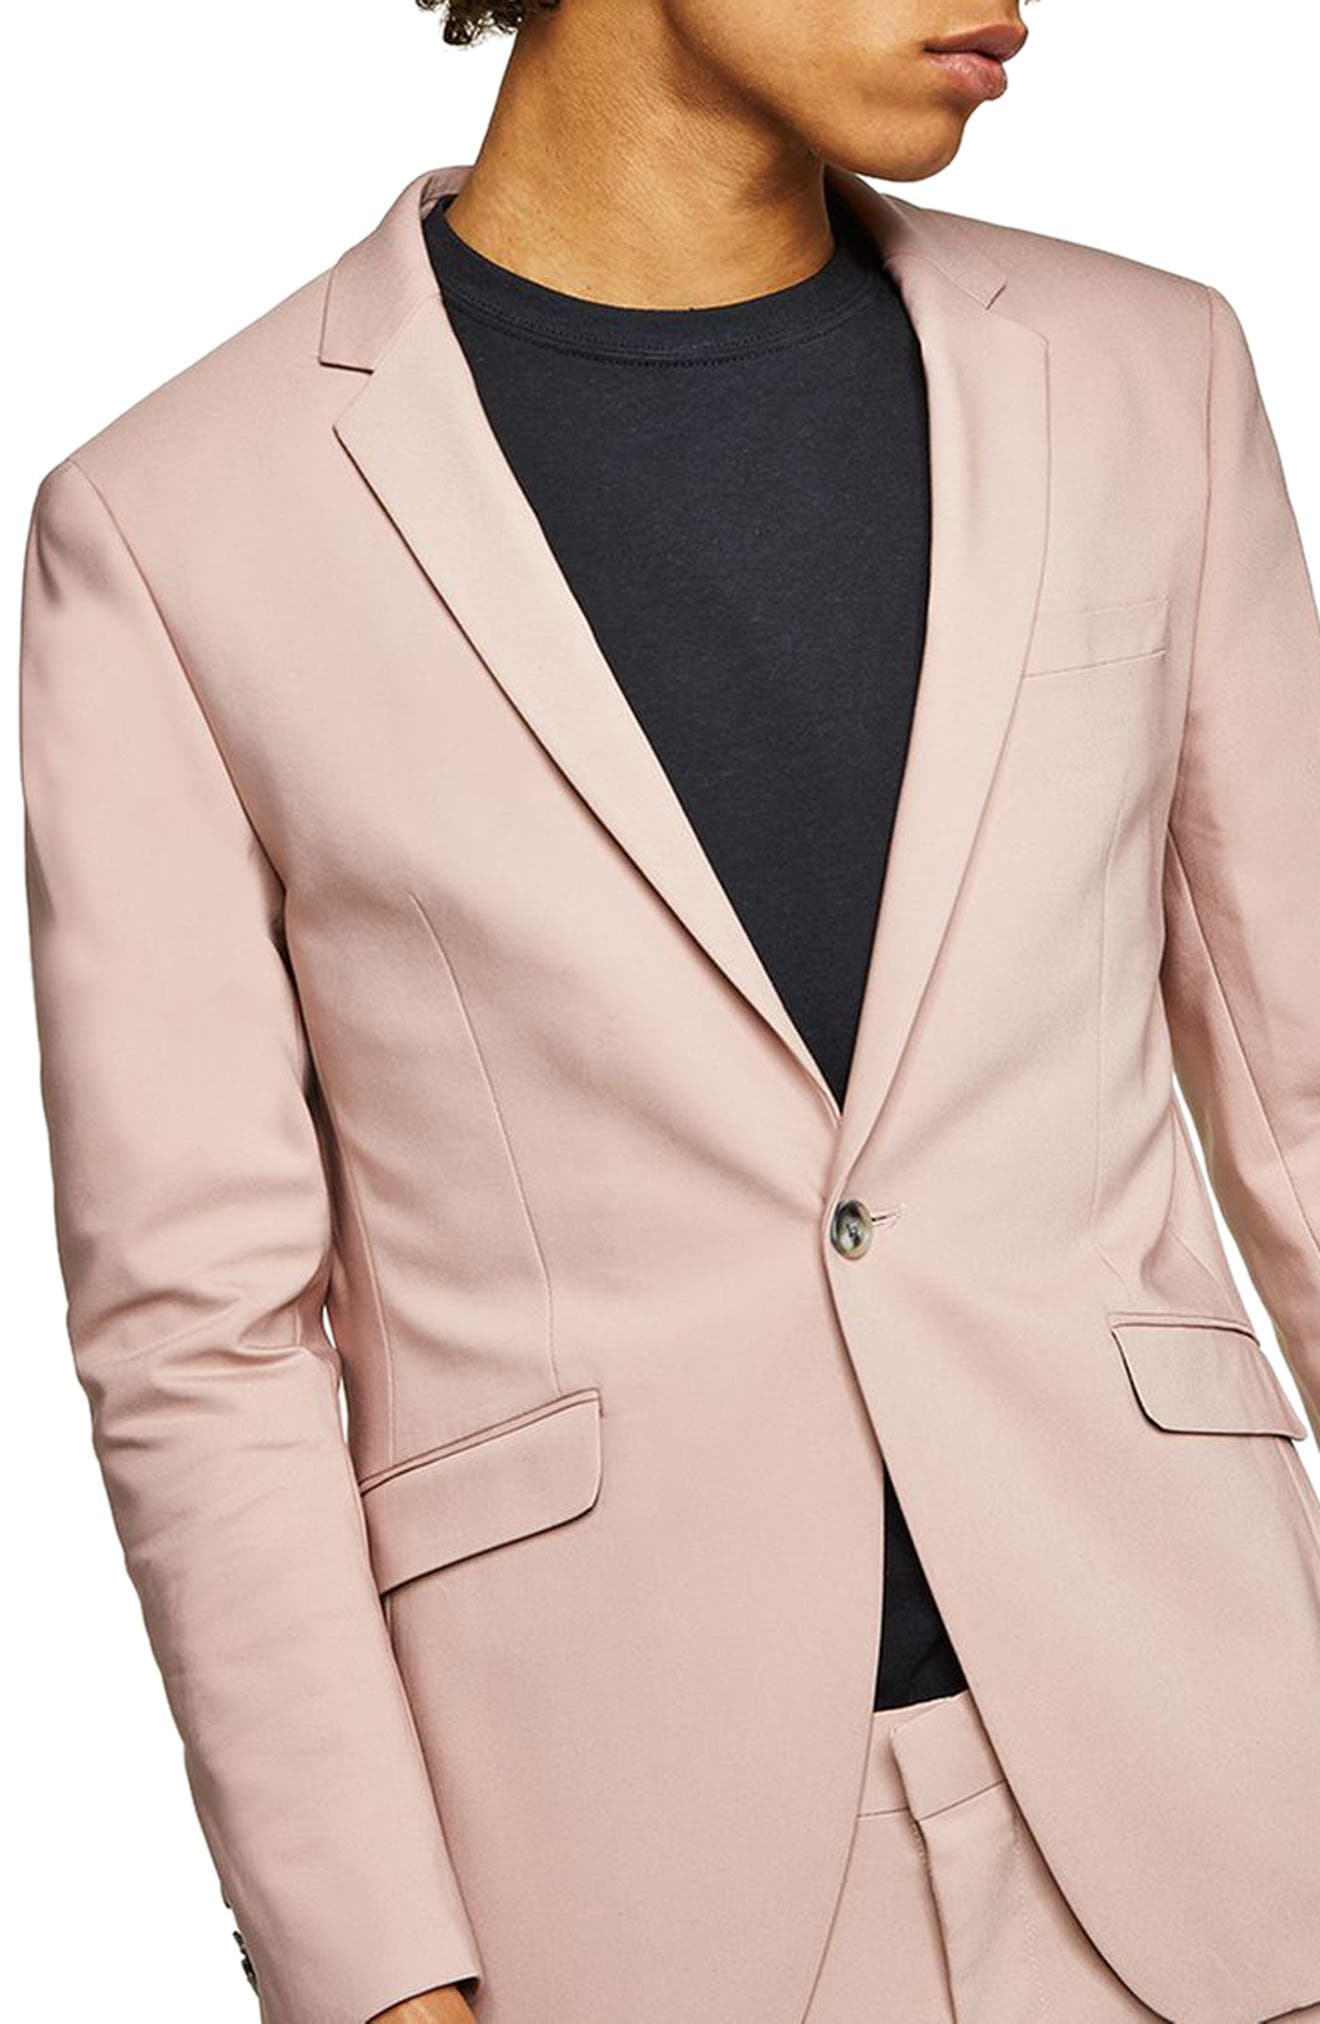 Pink Topman Suits, Sportcoats & Trousers | Nordstrom